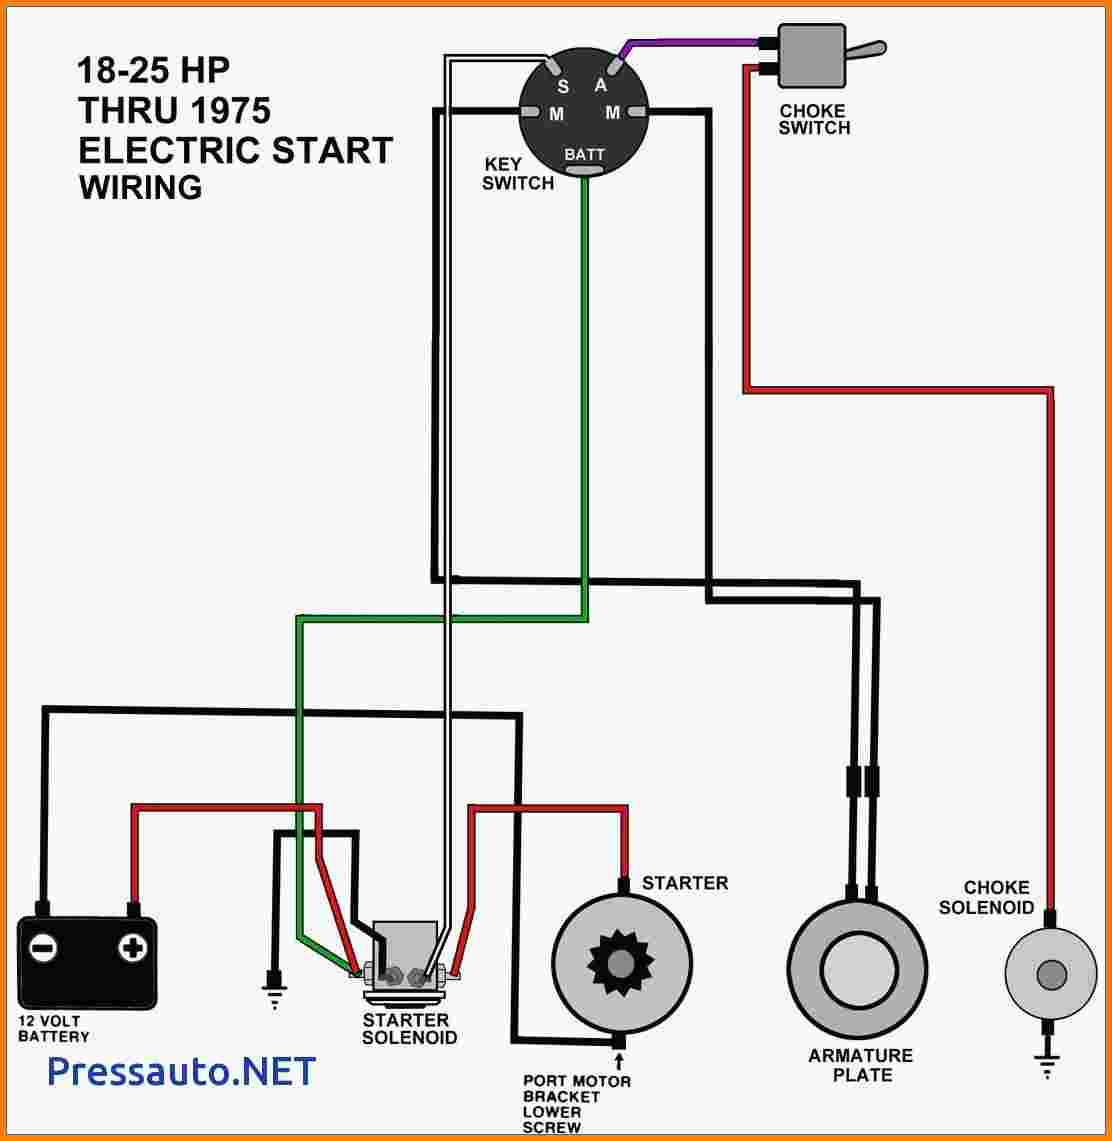 hight resolution of briggs amp stratton kill switch wiring diagram wire diagram database briggs amp stratton kill switch wiring